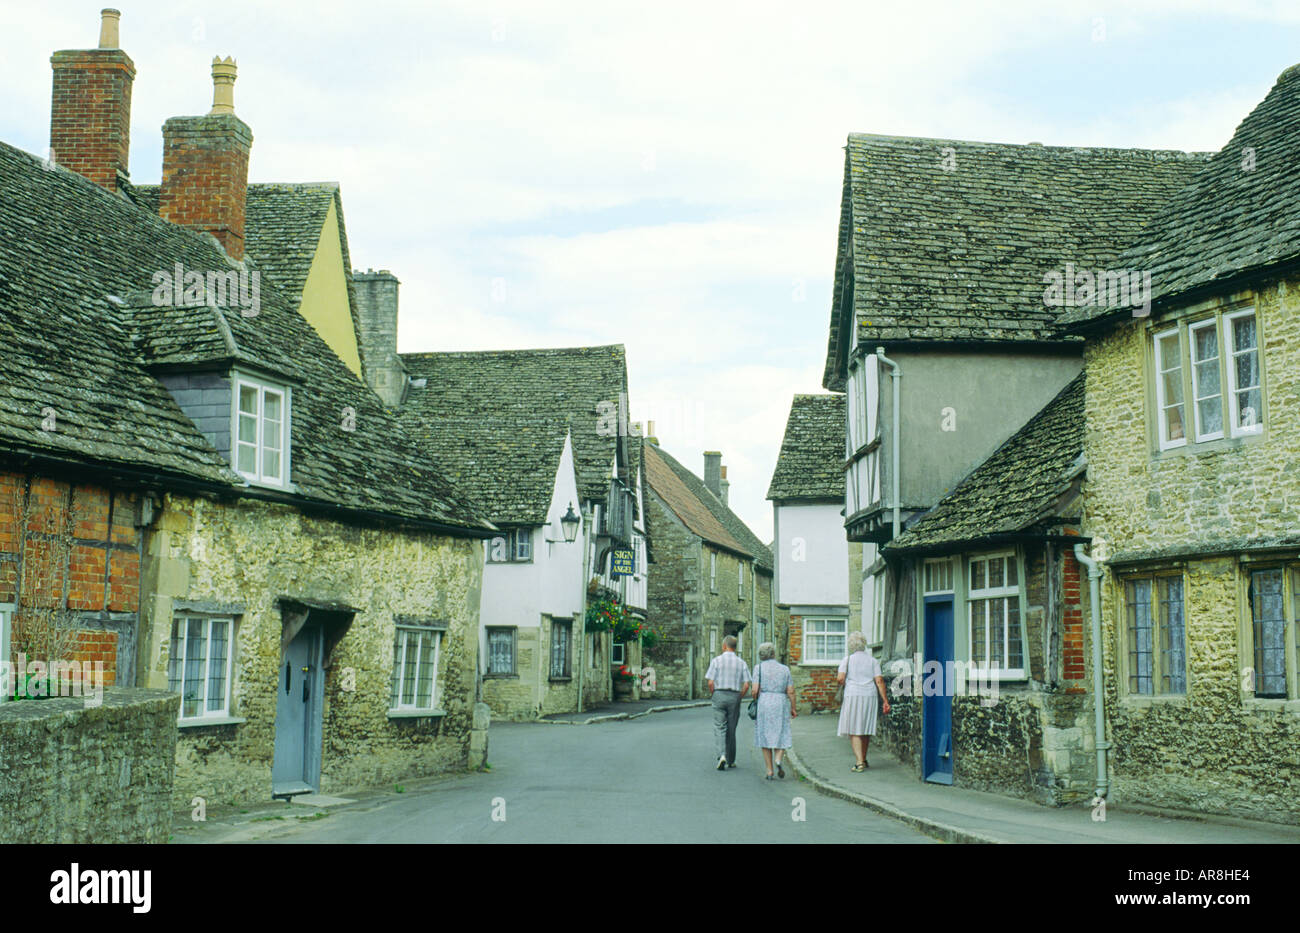 Lacock village in Wilshire, England. Visitors walk down street of old houses toward public house called Sign of the Angel. - Stock Image